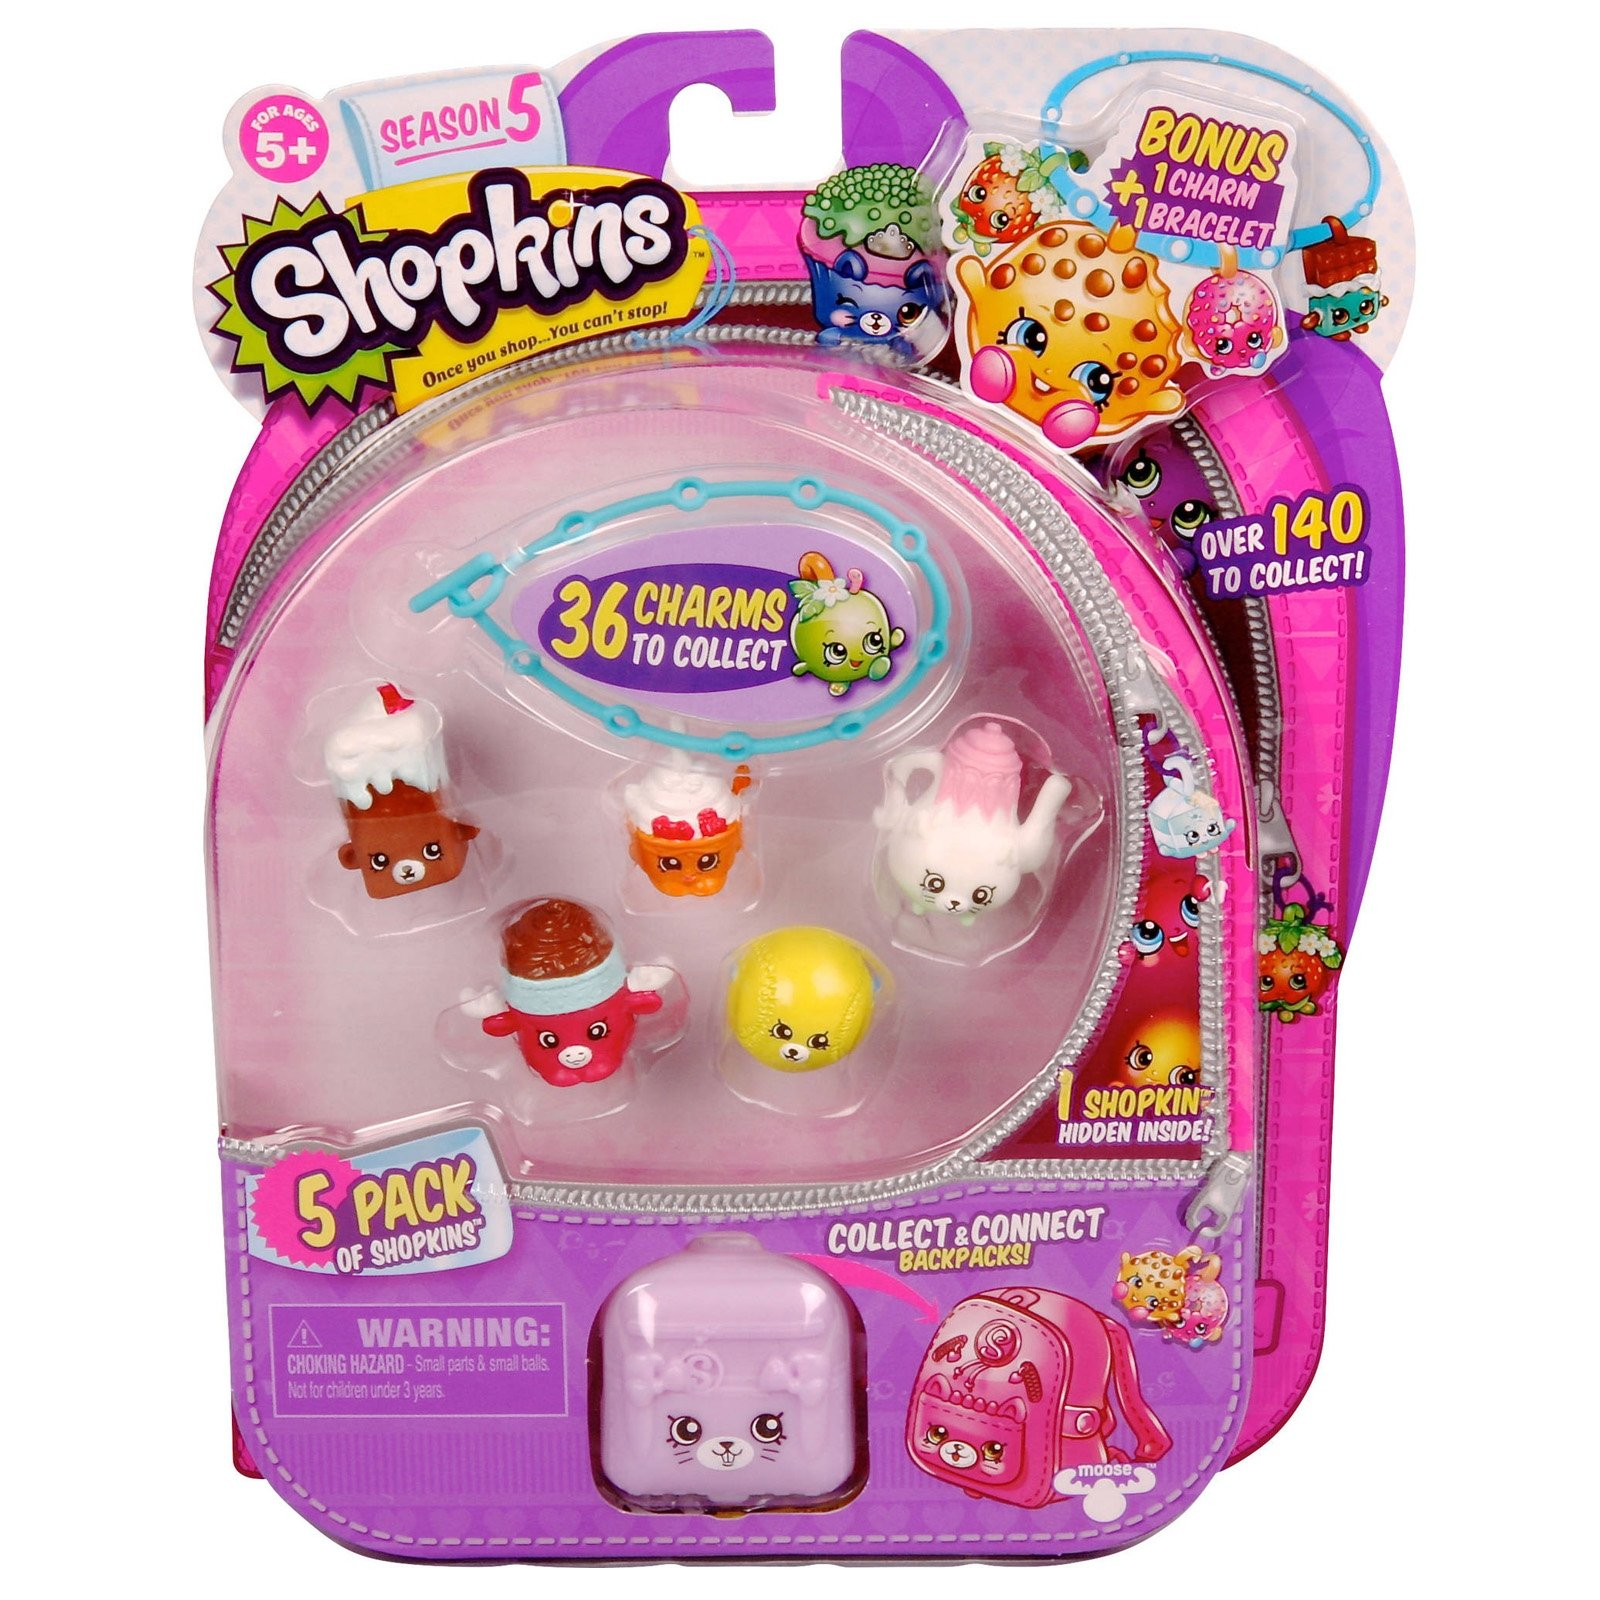 5 Pack of Collectible Shopkins Charm Bracelet and Figures